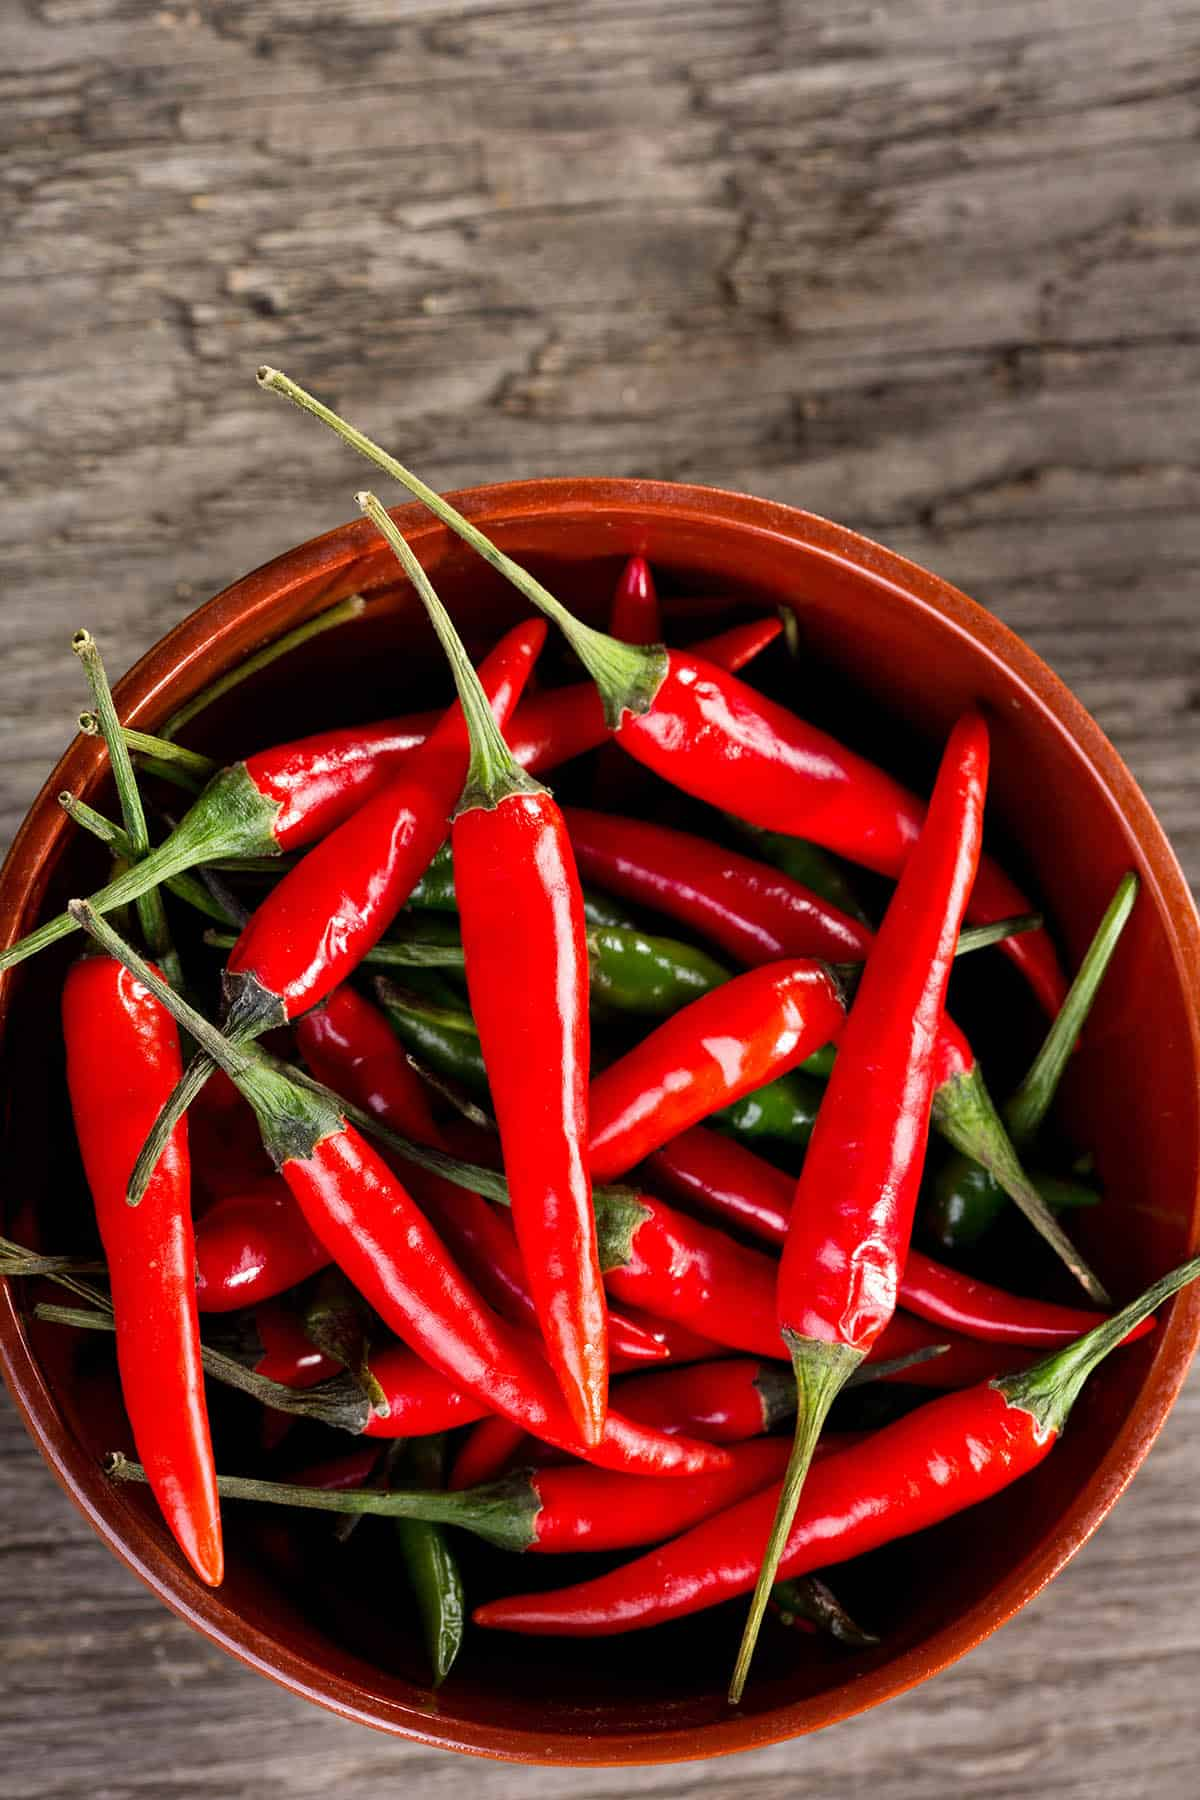 Where to Buy Chili Seeds